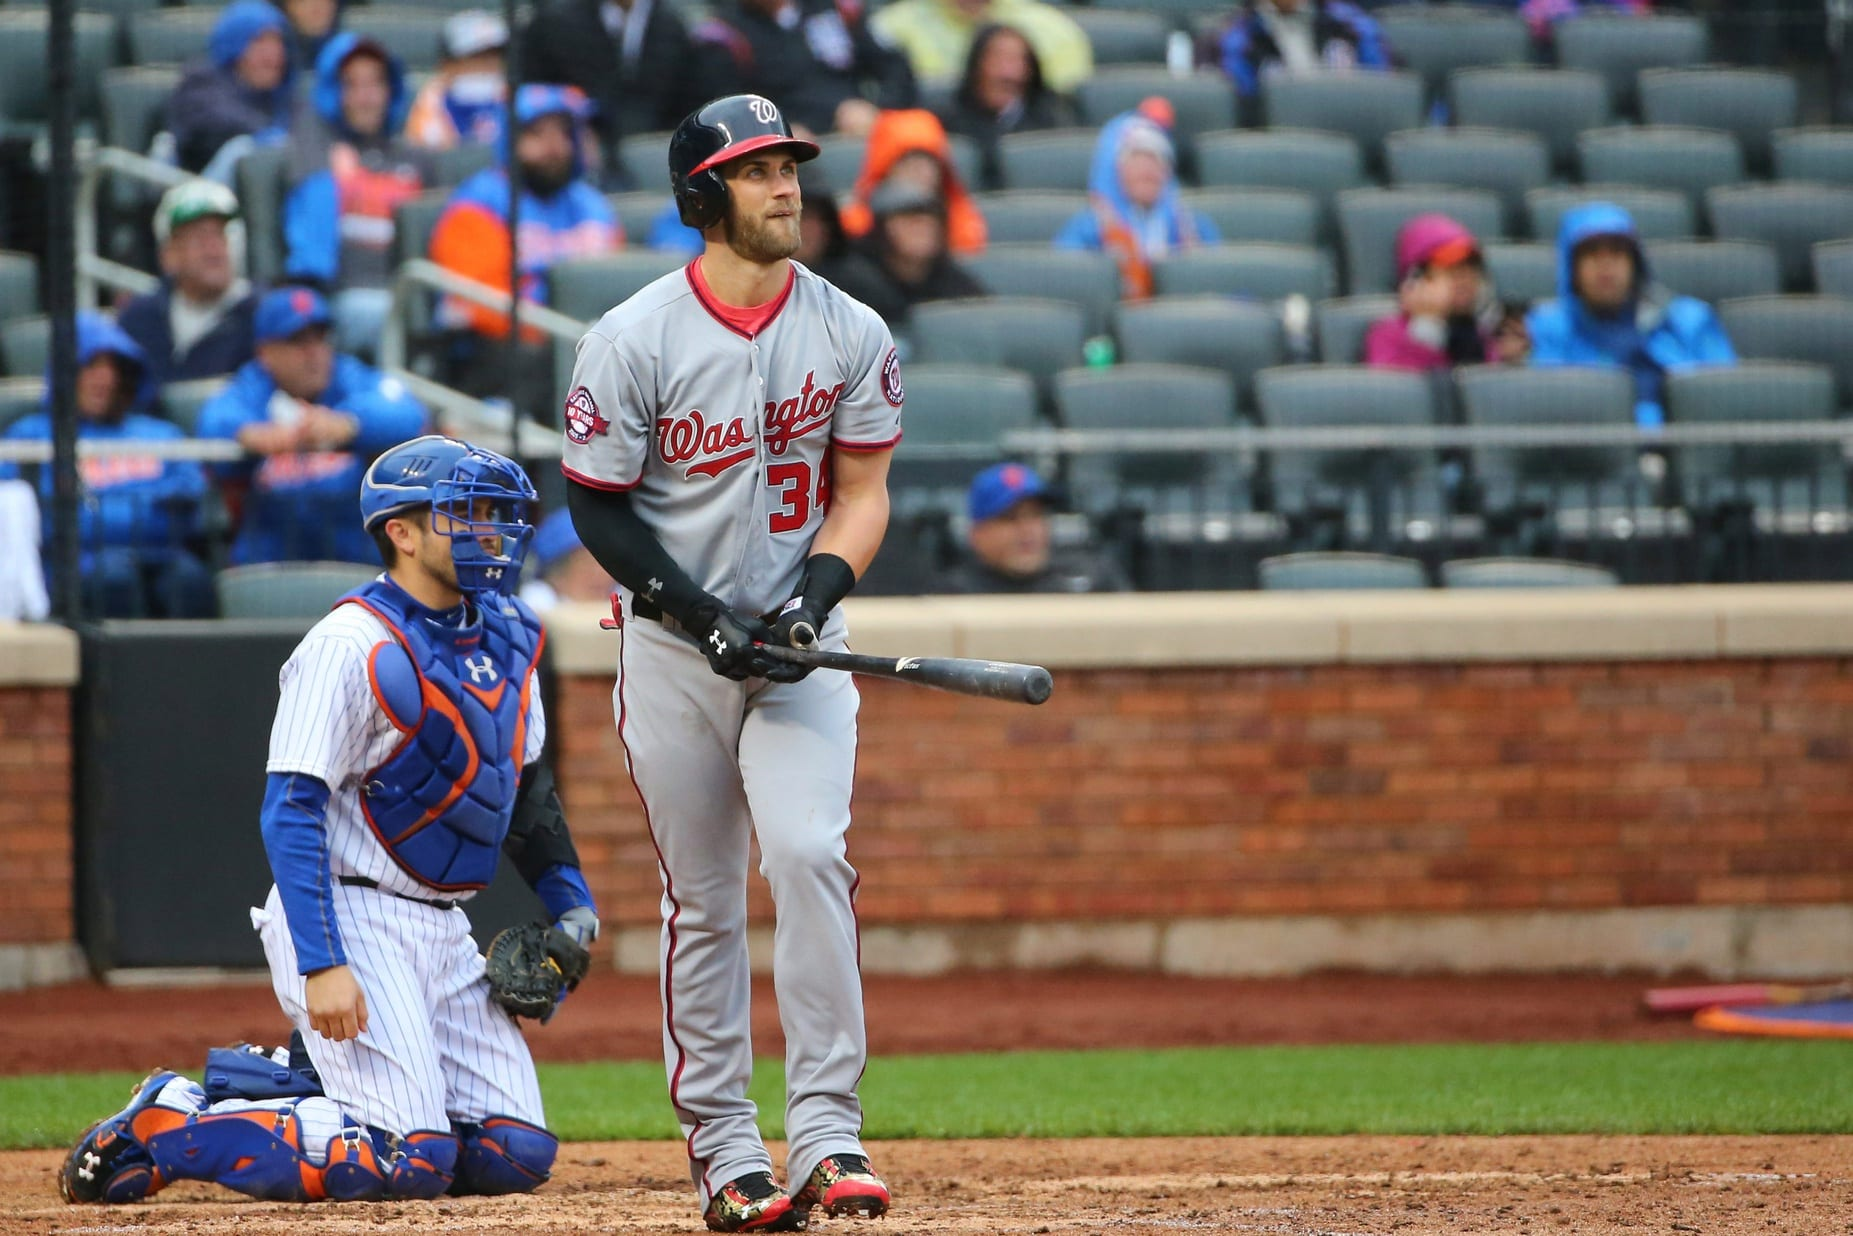 Bryce Harper Wins Nl Mvp; Zack Greinke, Clayton Kershaw Finish In Top 10